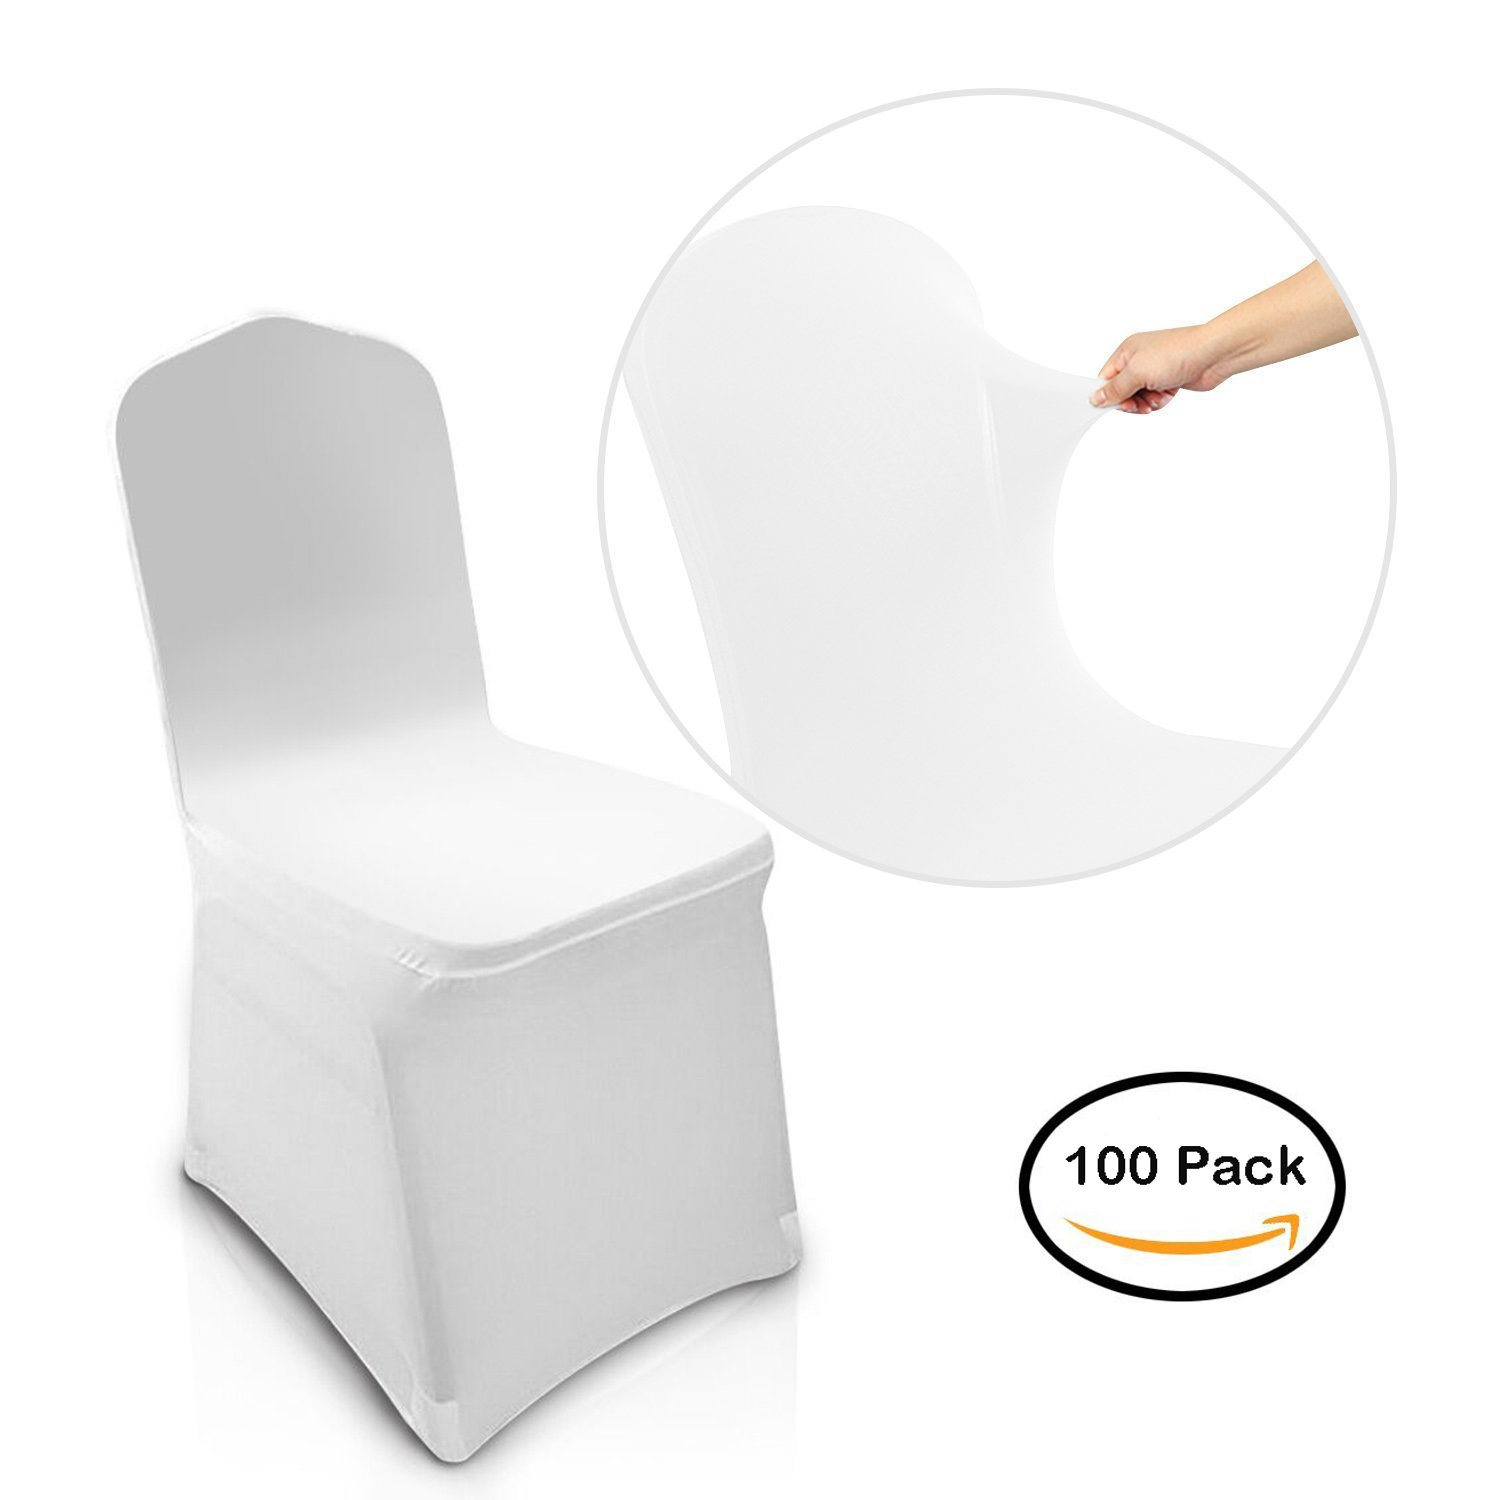 Fashine Universal 100pcs Polyester Spandex Chair Covers for Wedding, Banquet, Party (White) (US STOCK) by Fashine